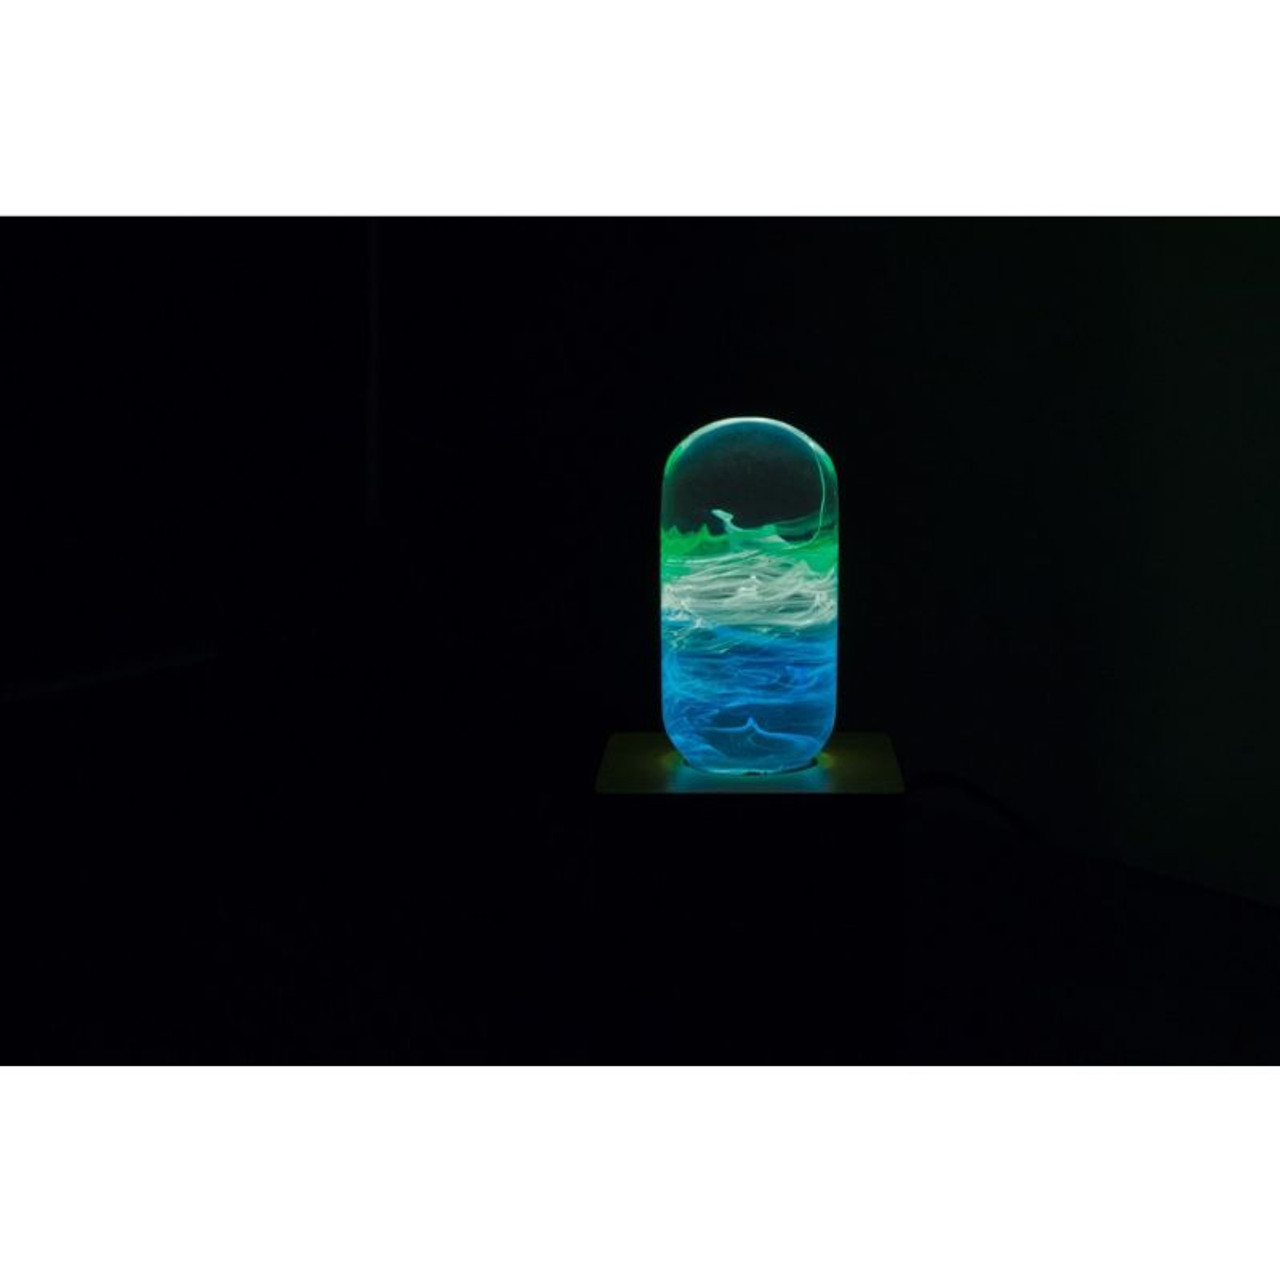 EP Light Prairie Green and Blue Bulb Art Fixture Lamp with Optional Modern or Vintage Base Stand